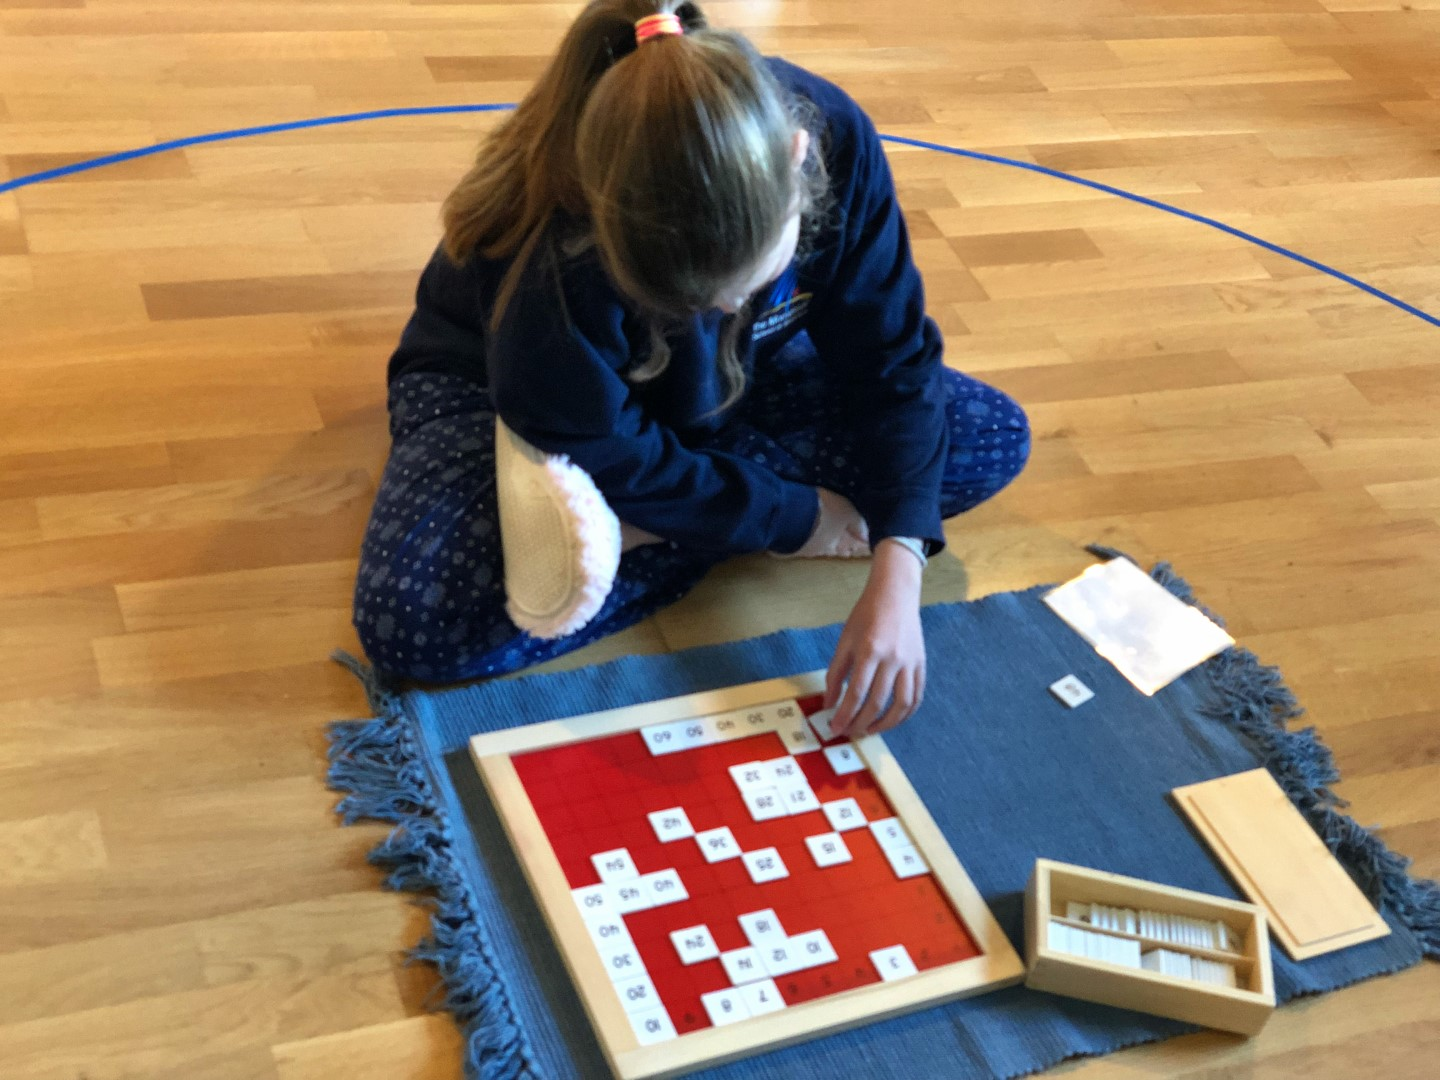 Child on the floor doing work with Montessori materials